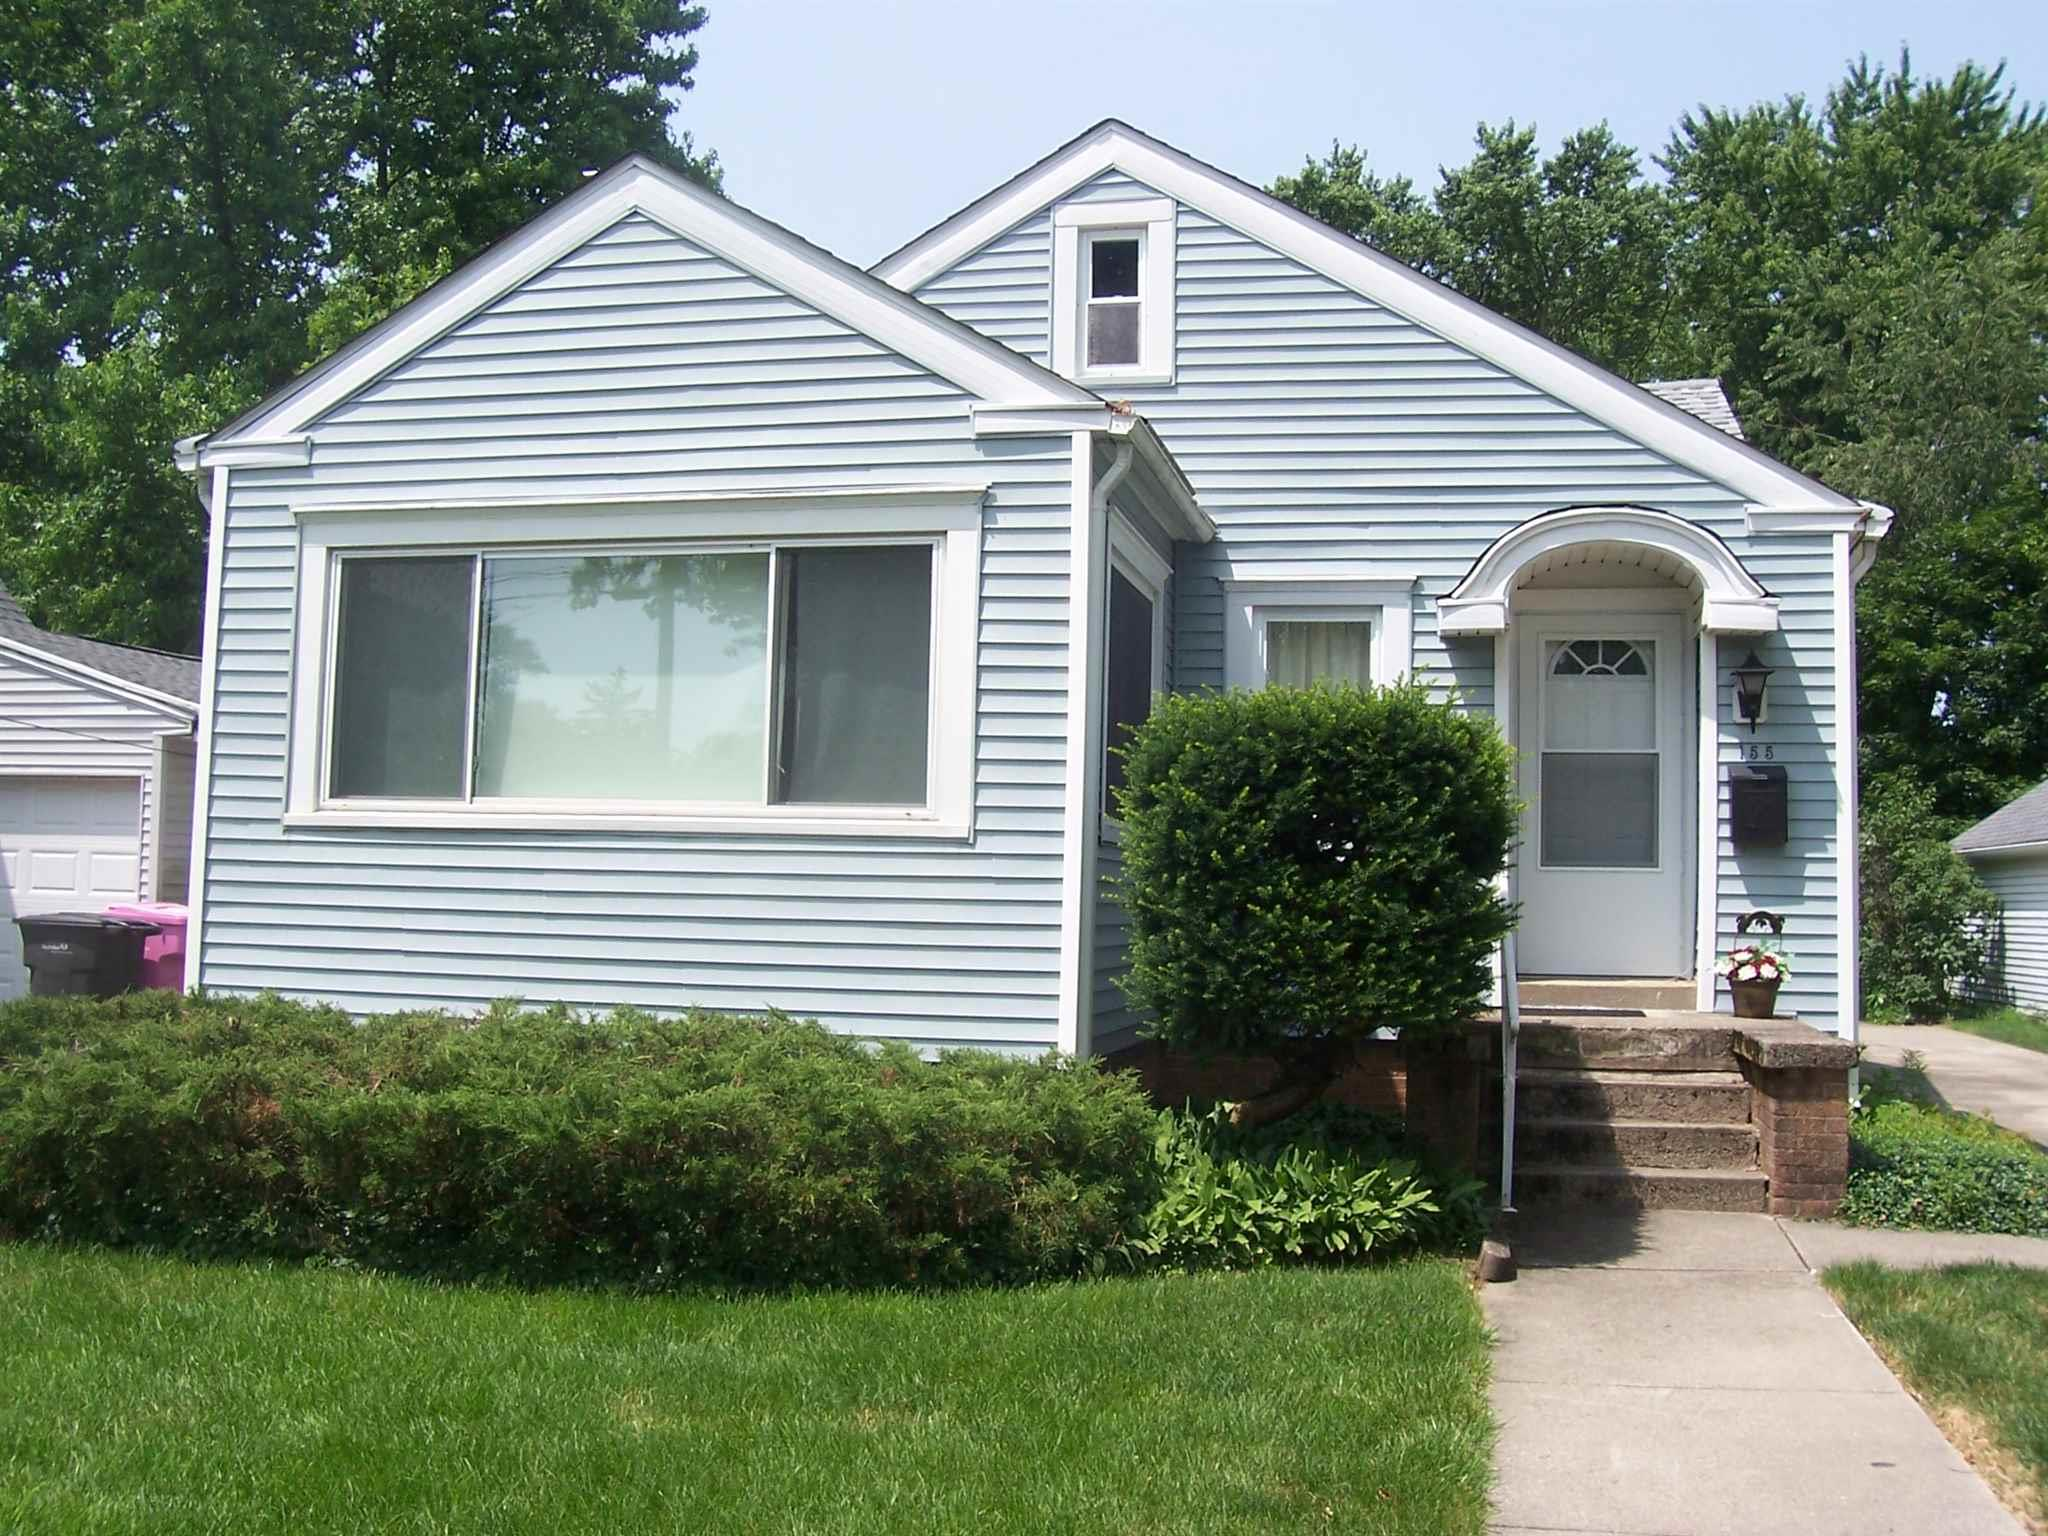 155 St Clair Elkhart, IN 46516